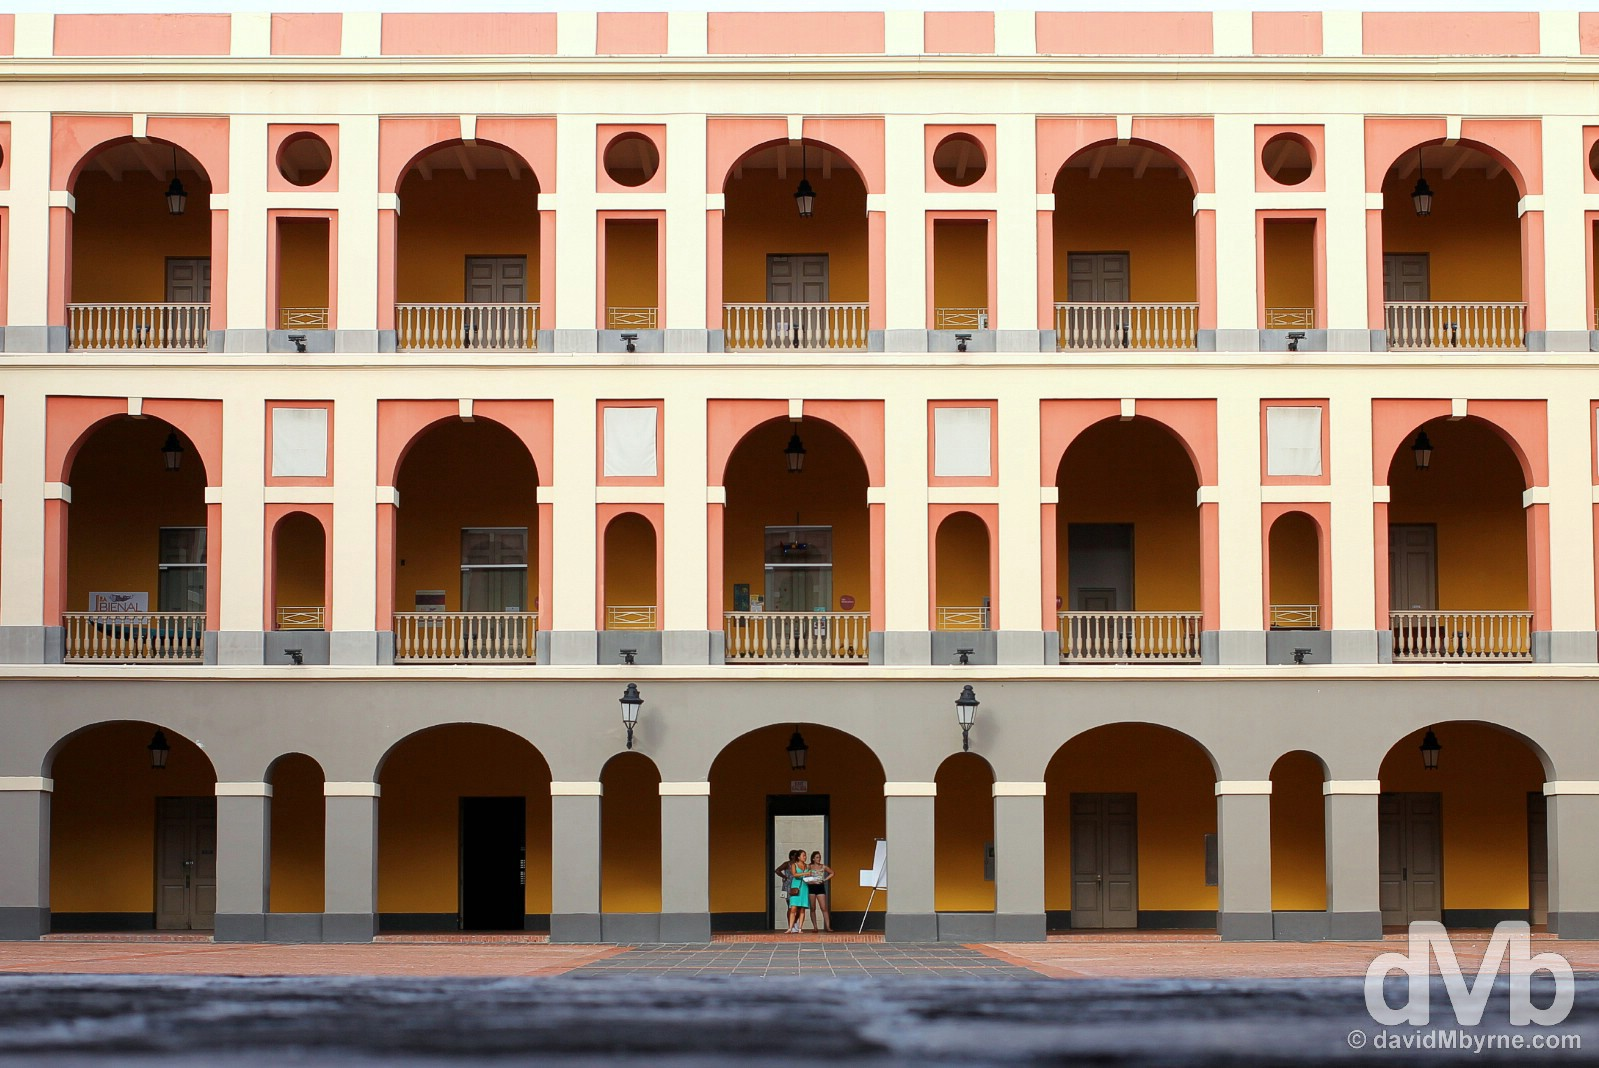 The interior courtyard of Cuartel de Ballaja in Old San Juan, Puerto Rico, Greater Antilles. June 2, 2015.